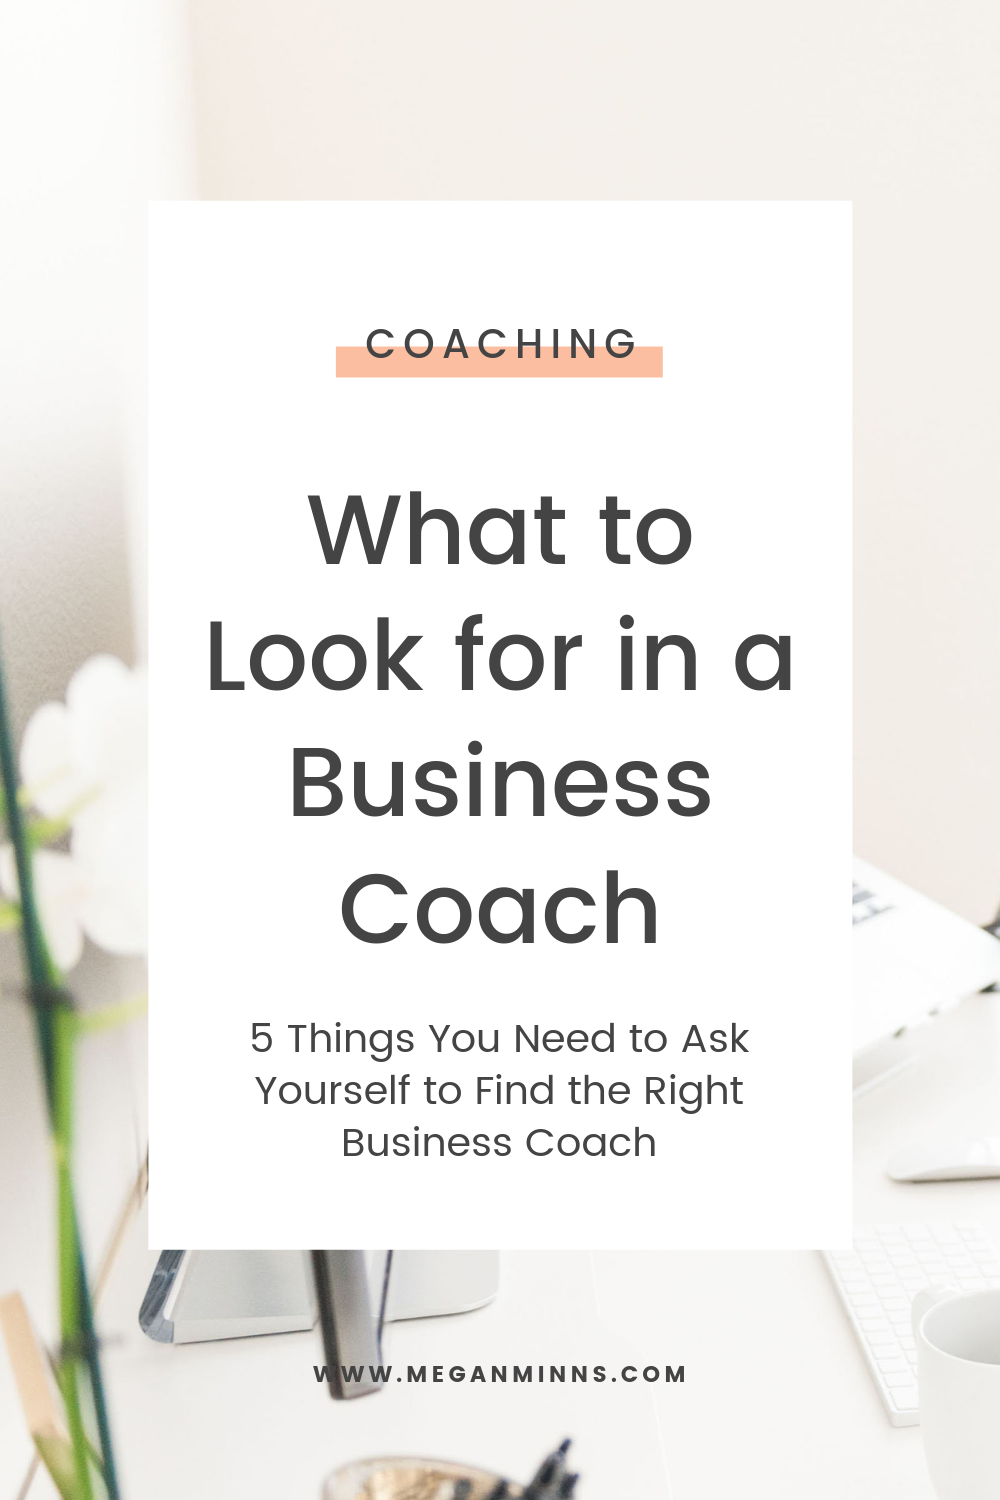 Are you looking for a business coach? Does it seem confusing on how to find one? These 5 simple questions will give you all the direction you need to find the right business coach for you. It's time to take out the guess work and get ready for an amazing coaching experience!  LEARN HOW TO FIND YOUR BUSINESS COACH HERE ✨ https://meganminns.com/blog/what-to-look-for-in-a-business-coach